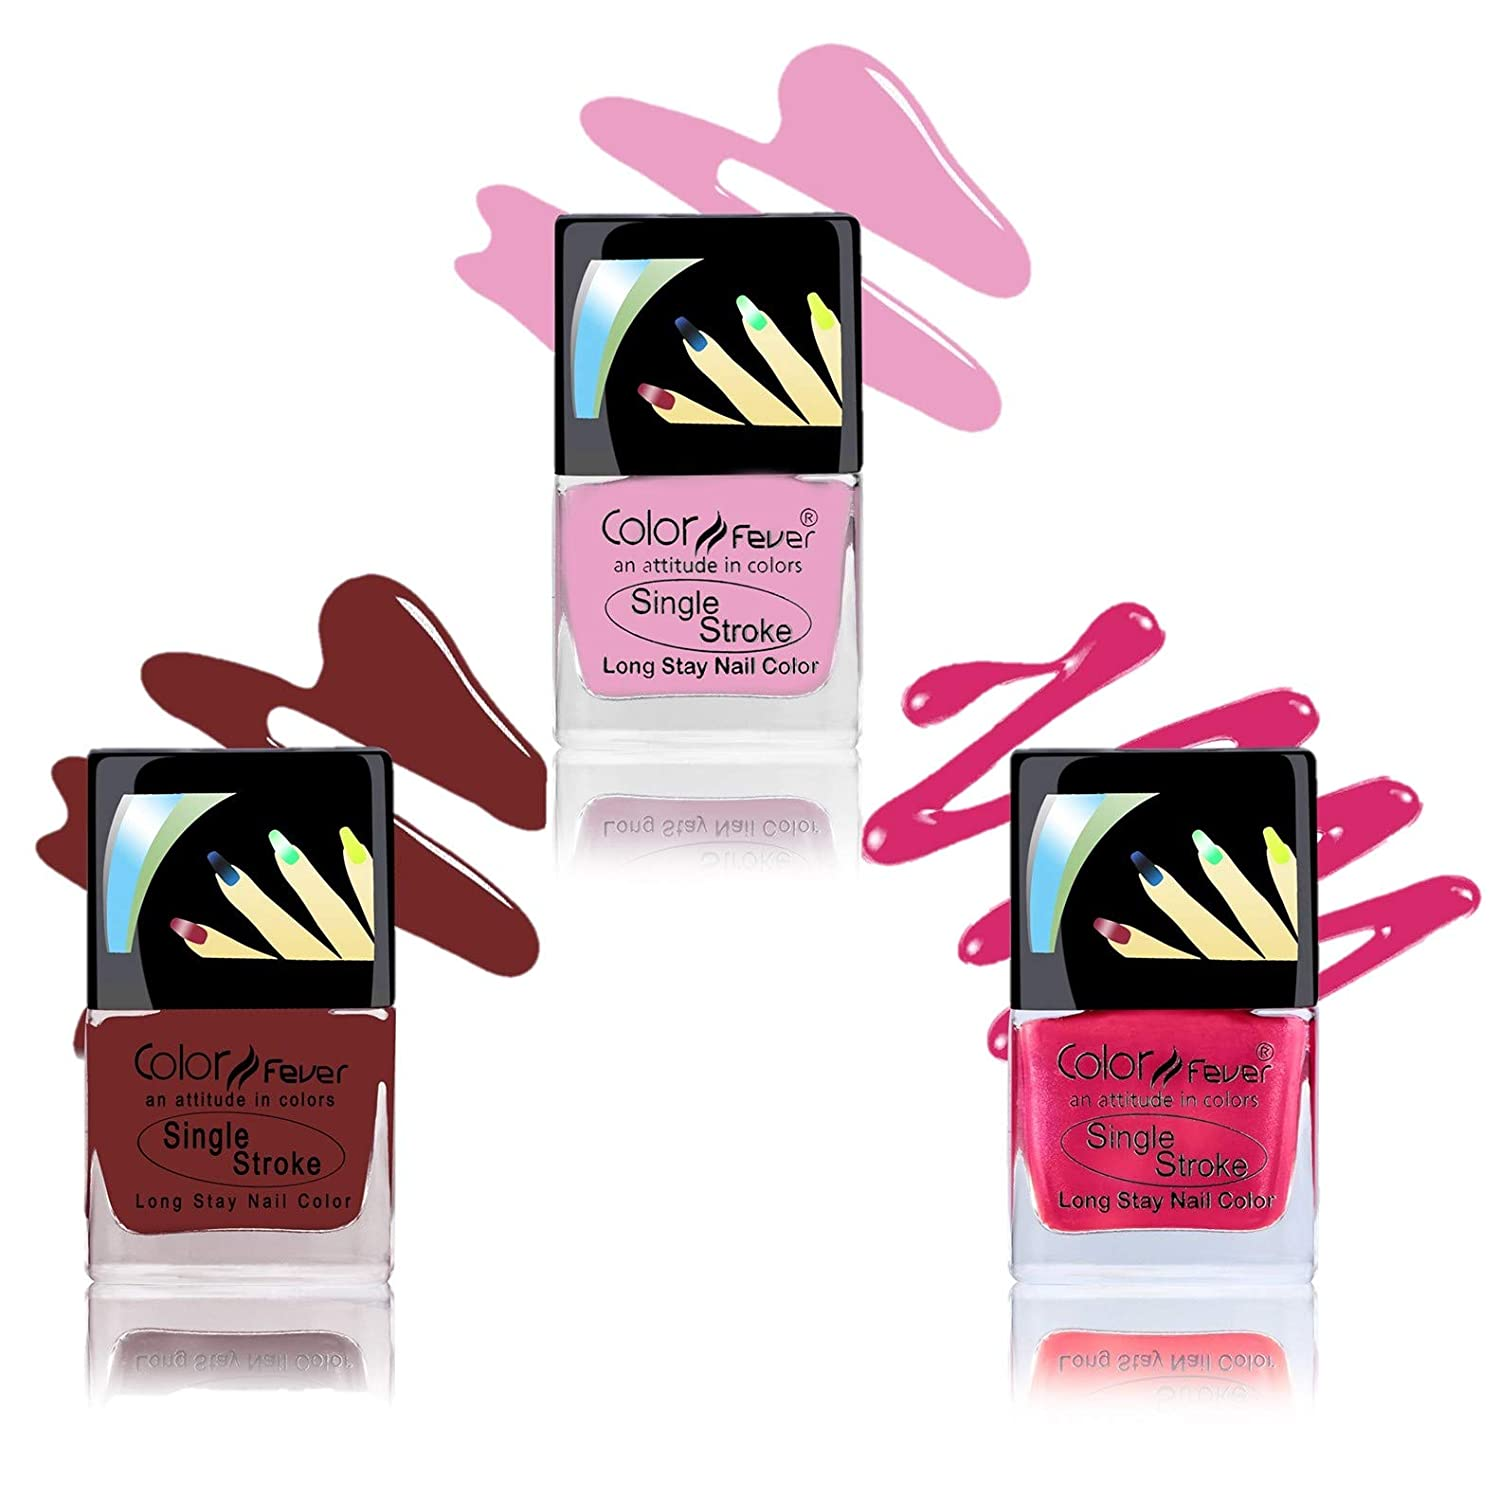 Color Fever Ultra Sparkle Nail Color (Pack of 3)